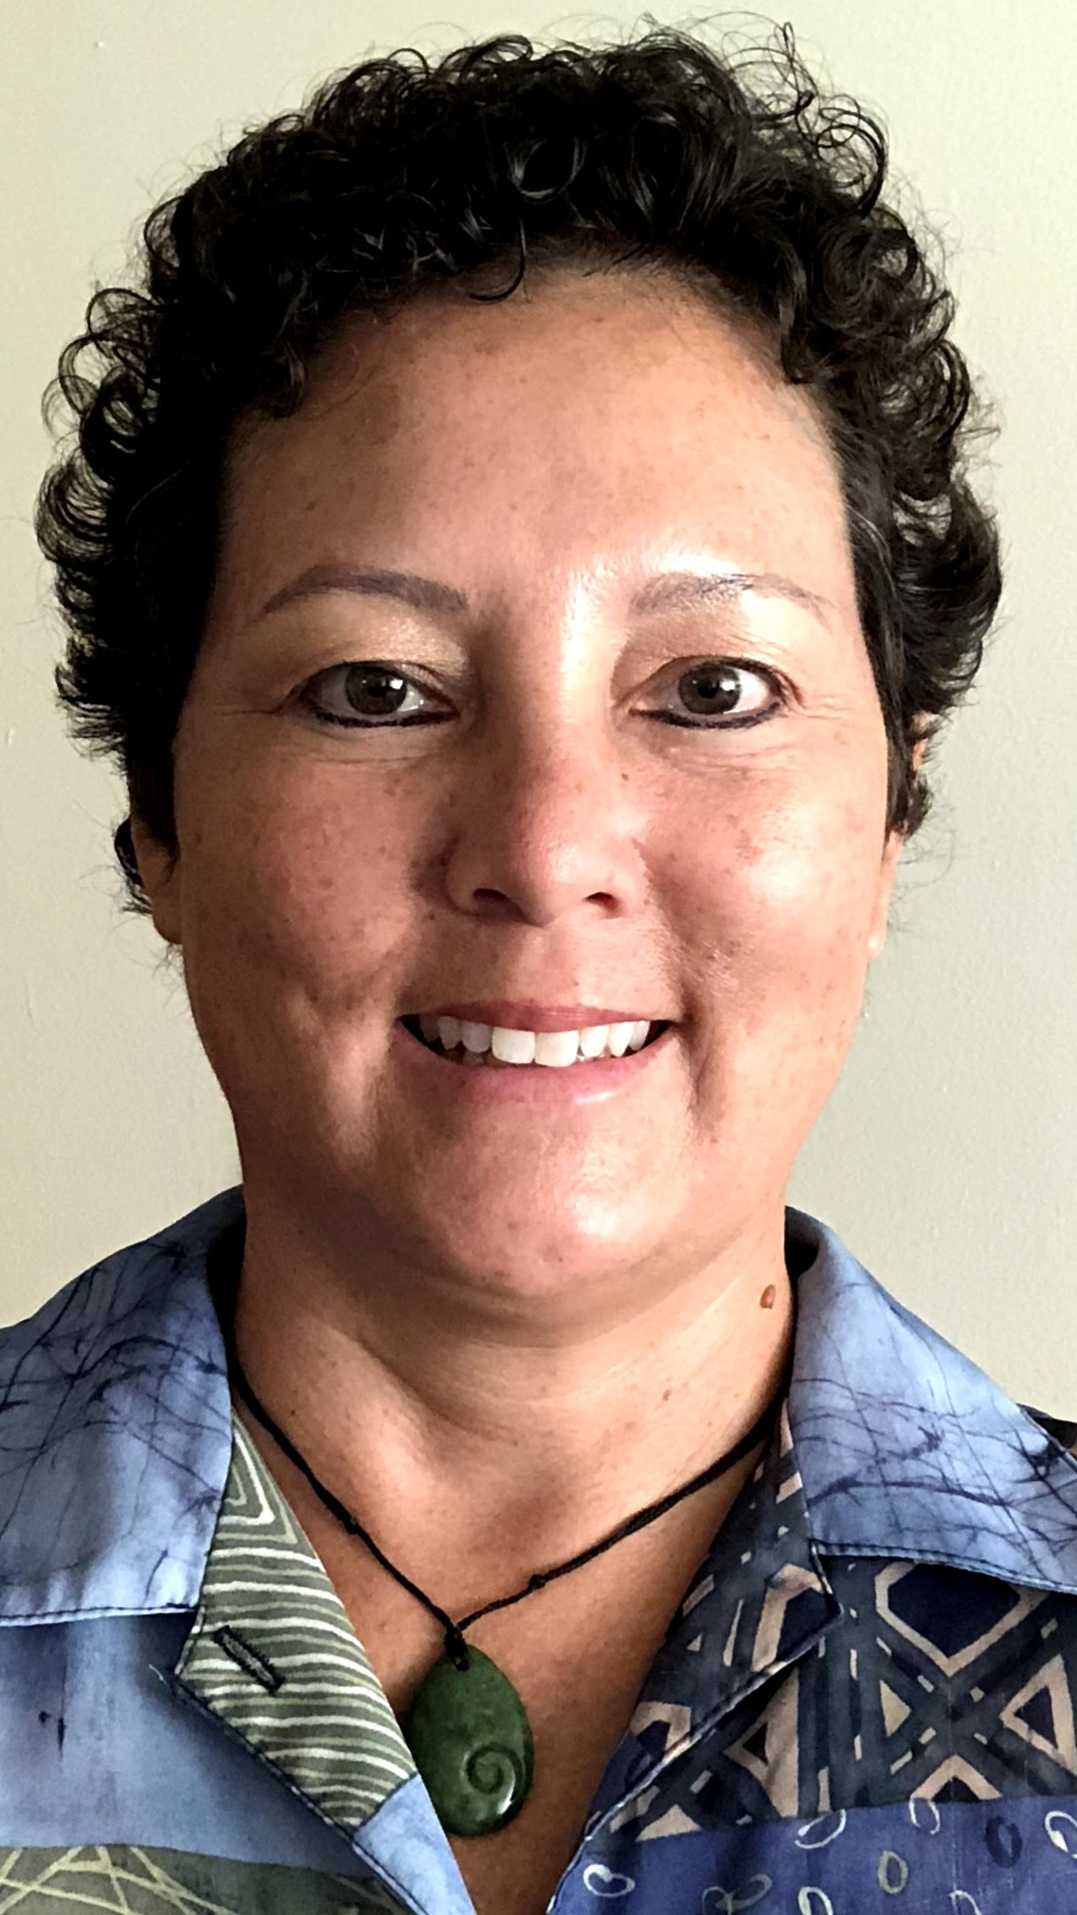 Rachel Yasui, IDC, Stage 1B - Cancer details: IDC is most common kind of breast cancer. Stage 1B.1st Symptoms: None, caught by delayed mammogramTreatment: Double mastectomy, neoadjuvant chemotherapy, hormone therapy (Tamoxifen)Status: Remission